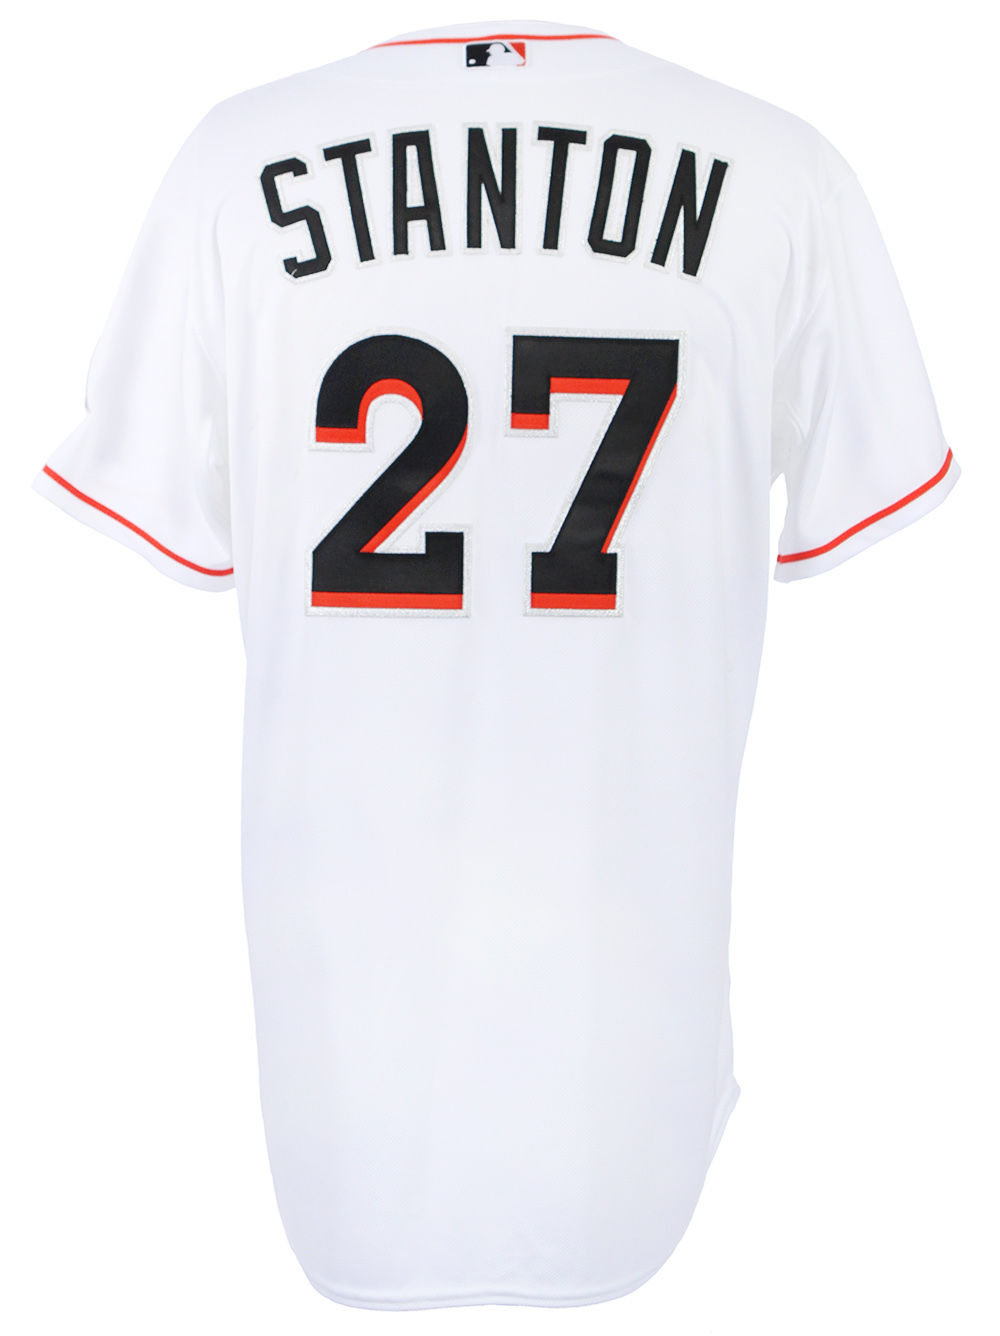 998f430e0 2015 Giancarlo Stanton Miami Marlins Game Used Home Jersey MEARS A10 COA  Yankees